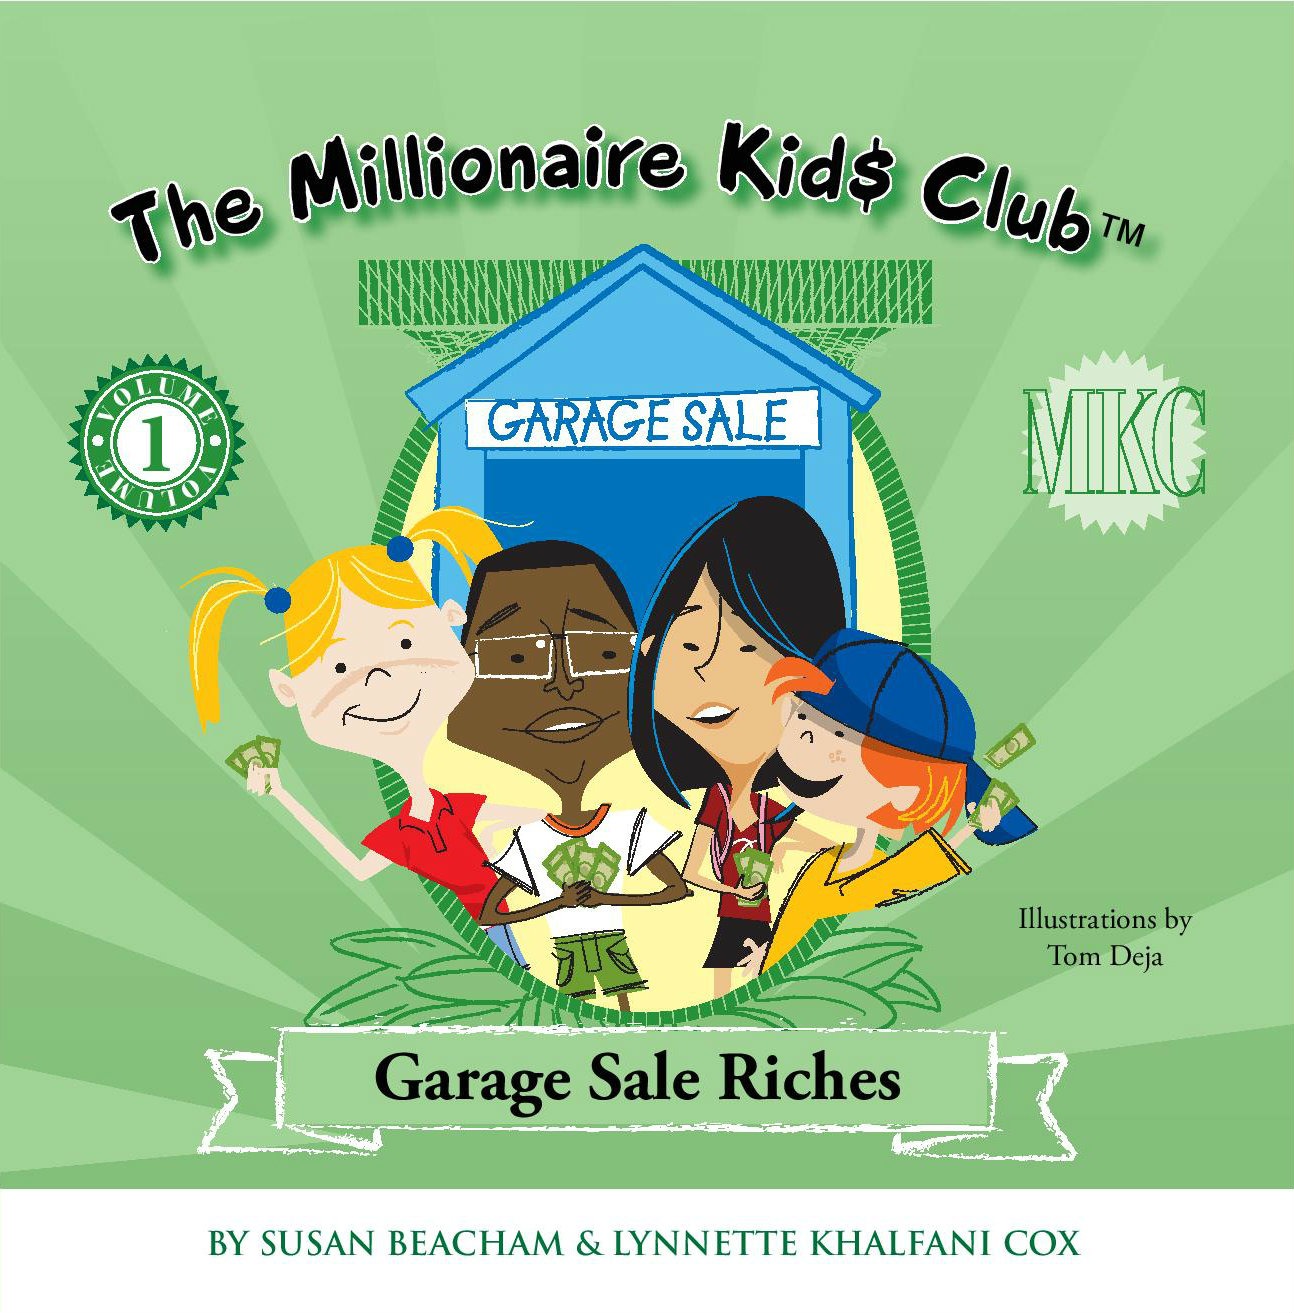 Millionaire Kids Club - Garage Sale Riches